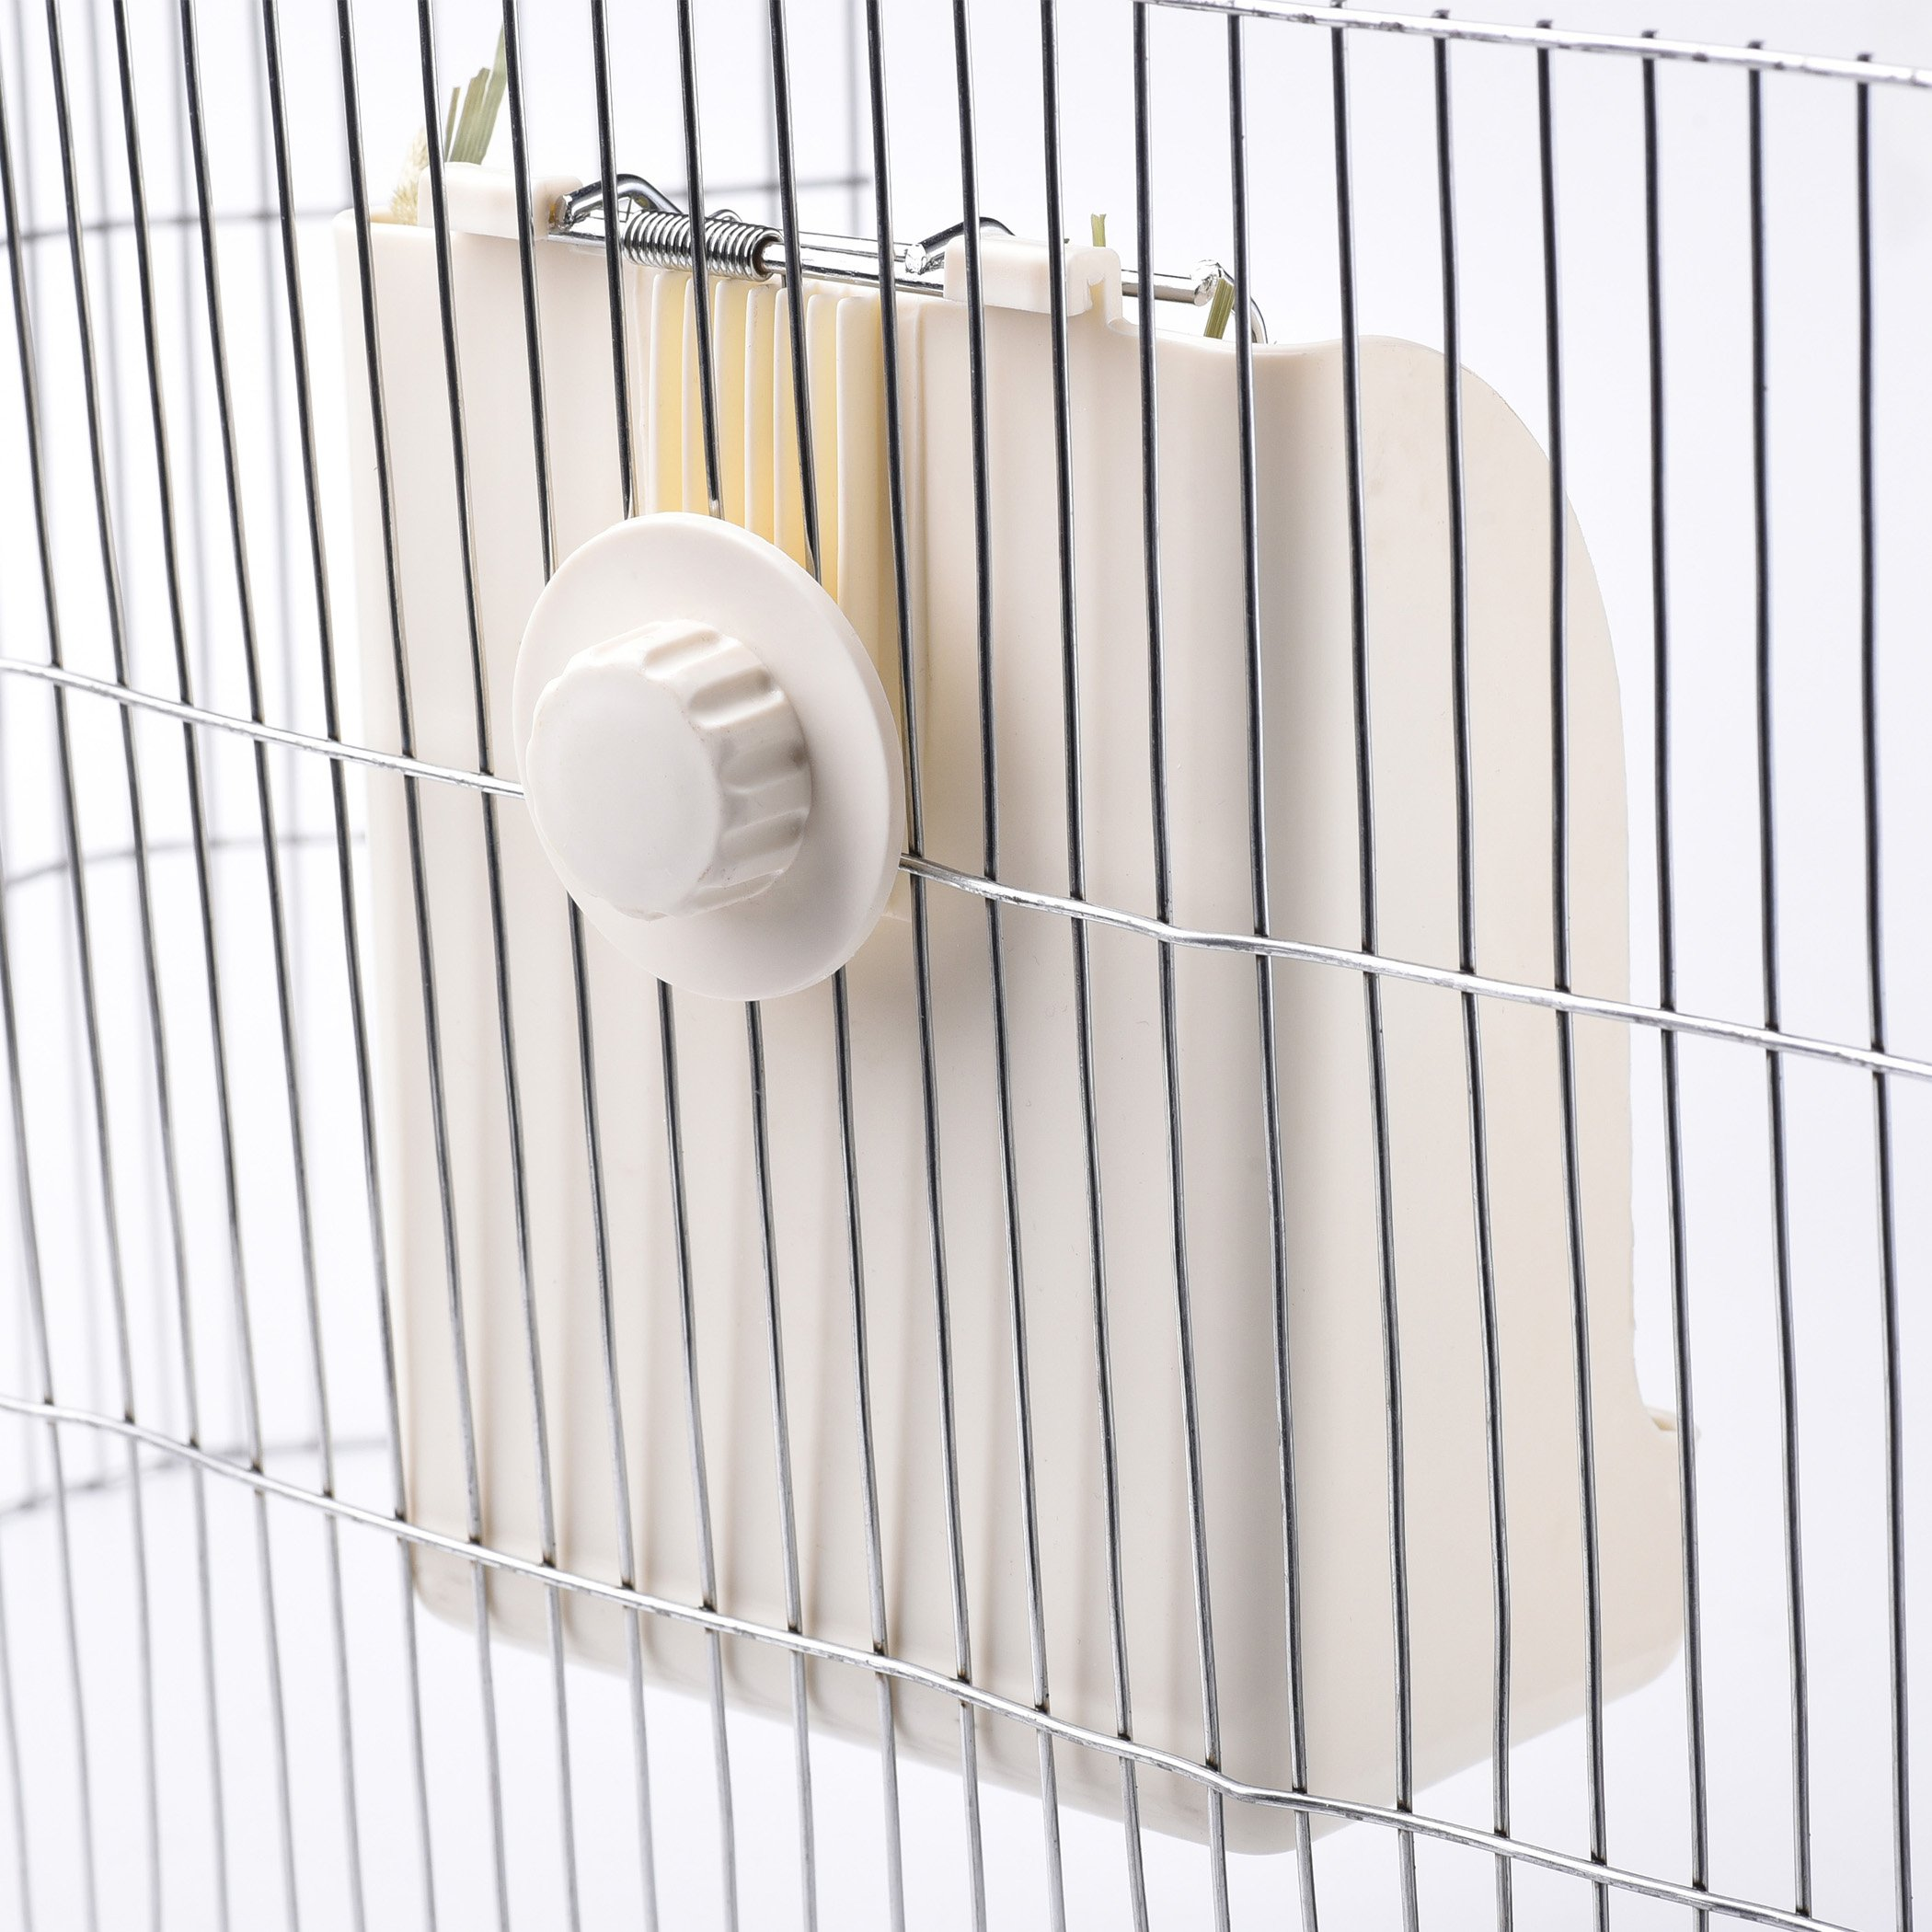 CalPalmy (Upgraded 2-Pack) Hay Feeder/Rack - Ideal for Rabbit/Chinchilla/Guinea Pig - Keeps Grass Clean & Fresh/Non-Toxic, BPA Free Plastic/Minimizing Waste/Mess by CalPalmy (Image #3)